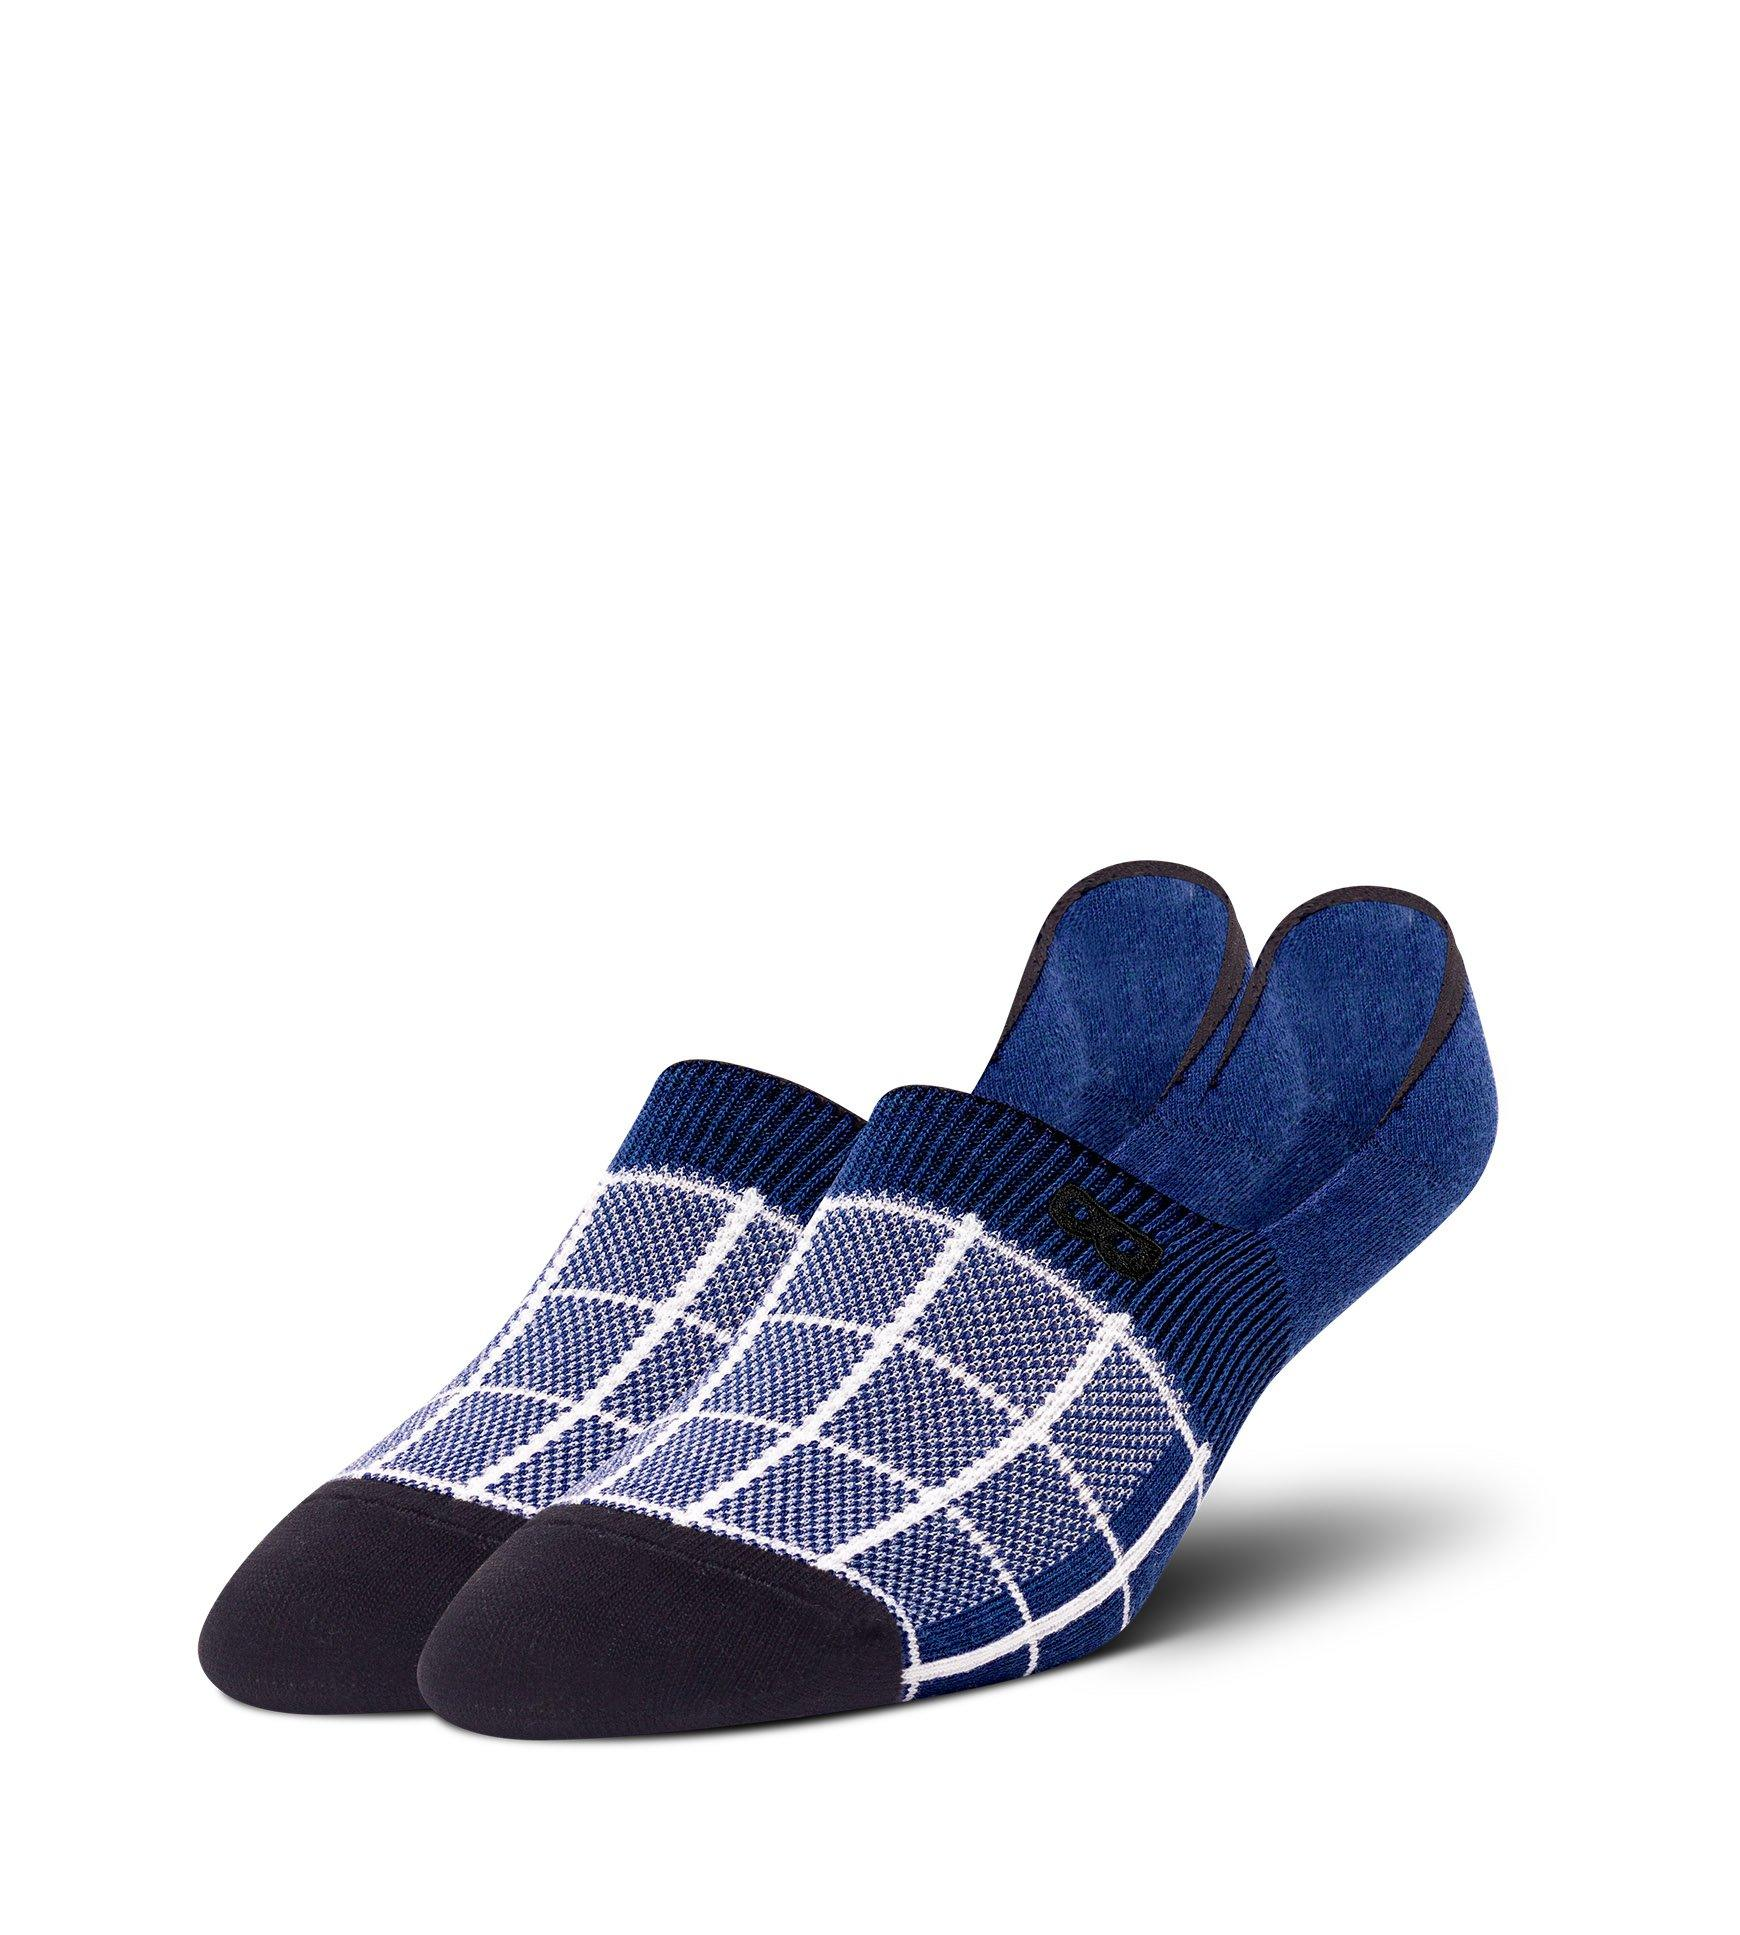 The Grid In Navy Men's No Show Sock